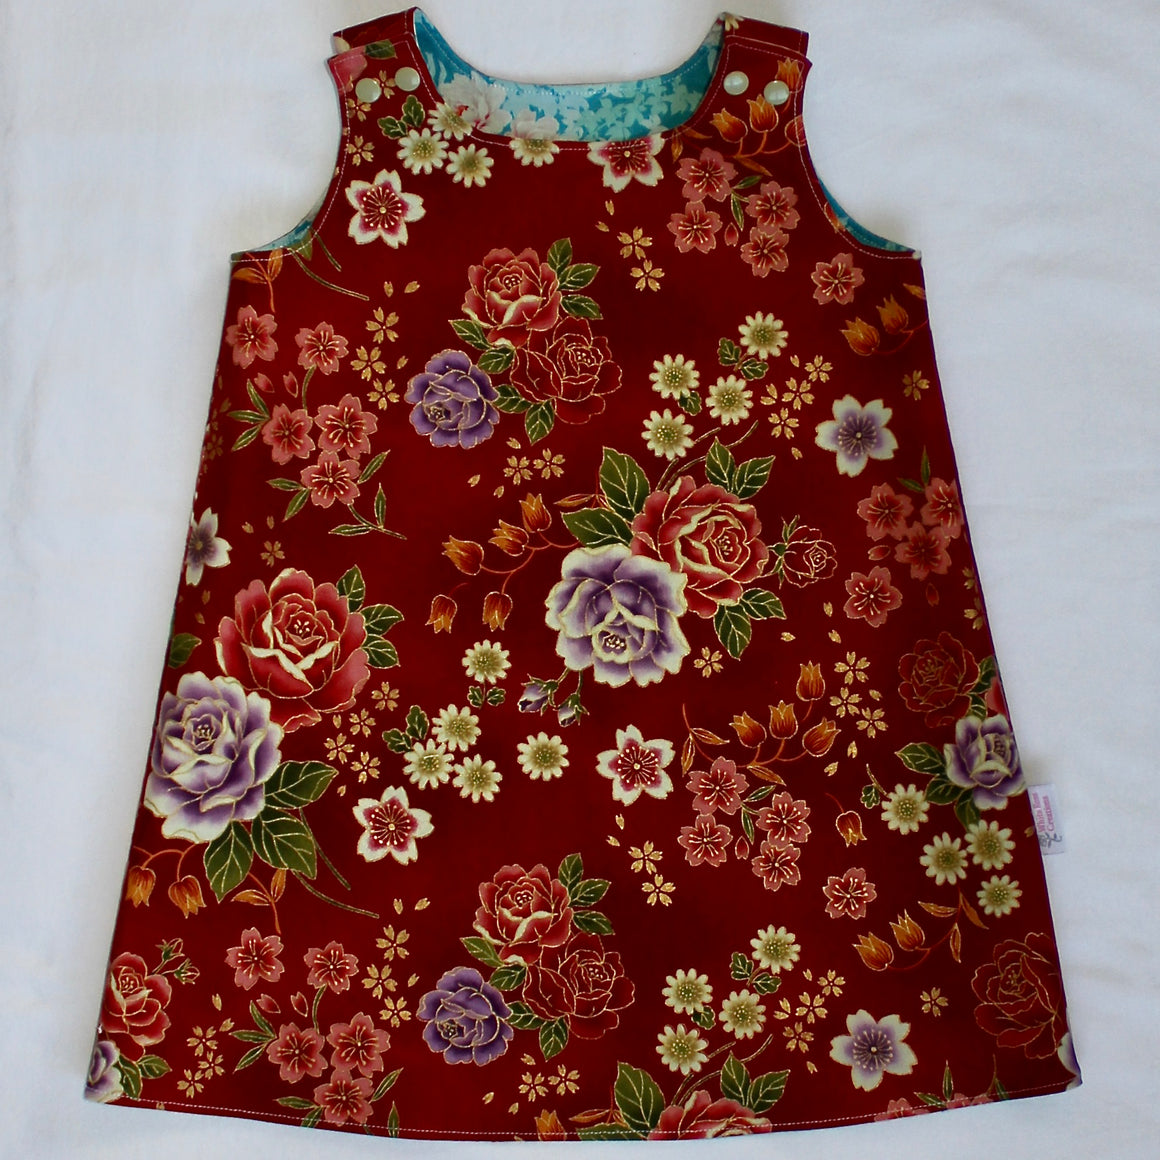 Annie Reversible Dress - Red with Multi-Coloured Flowers